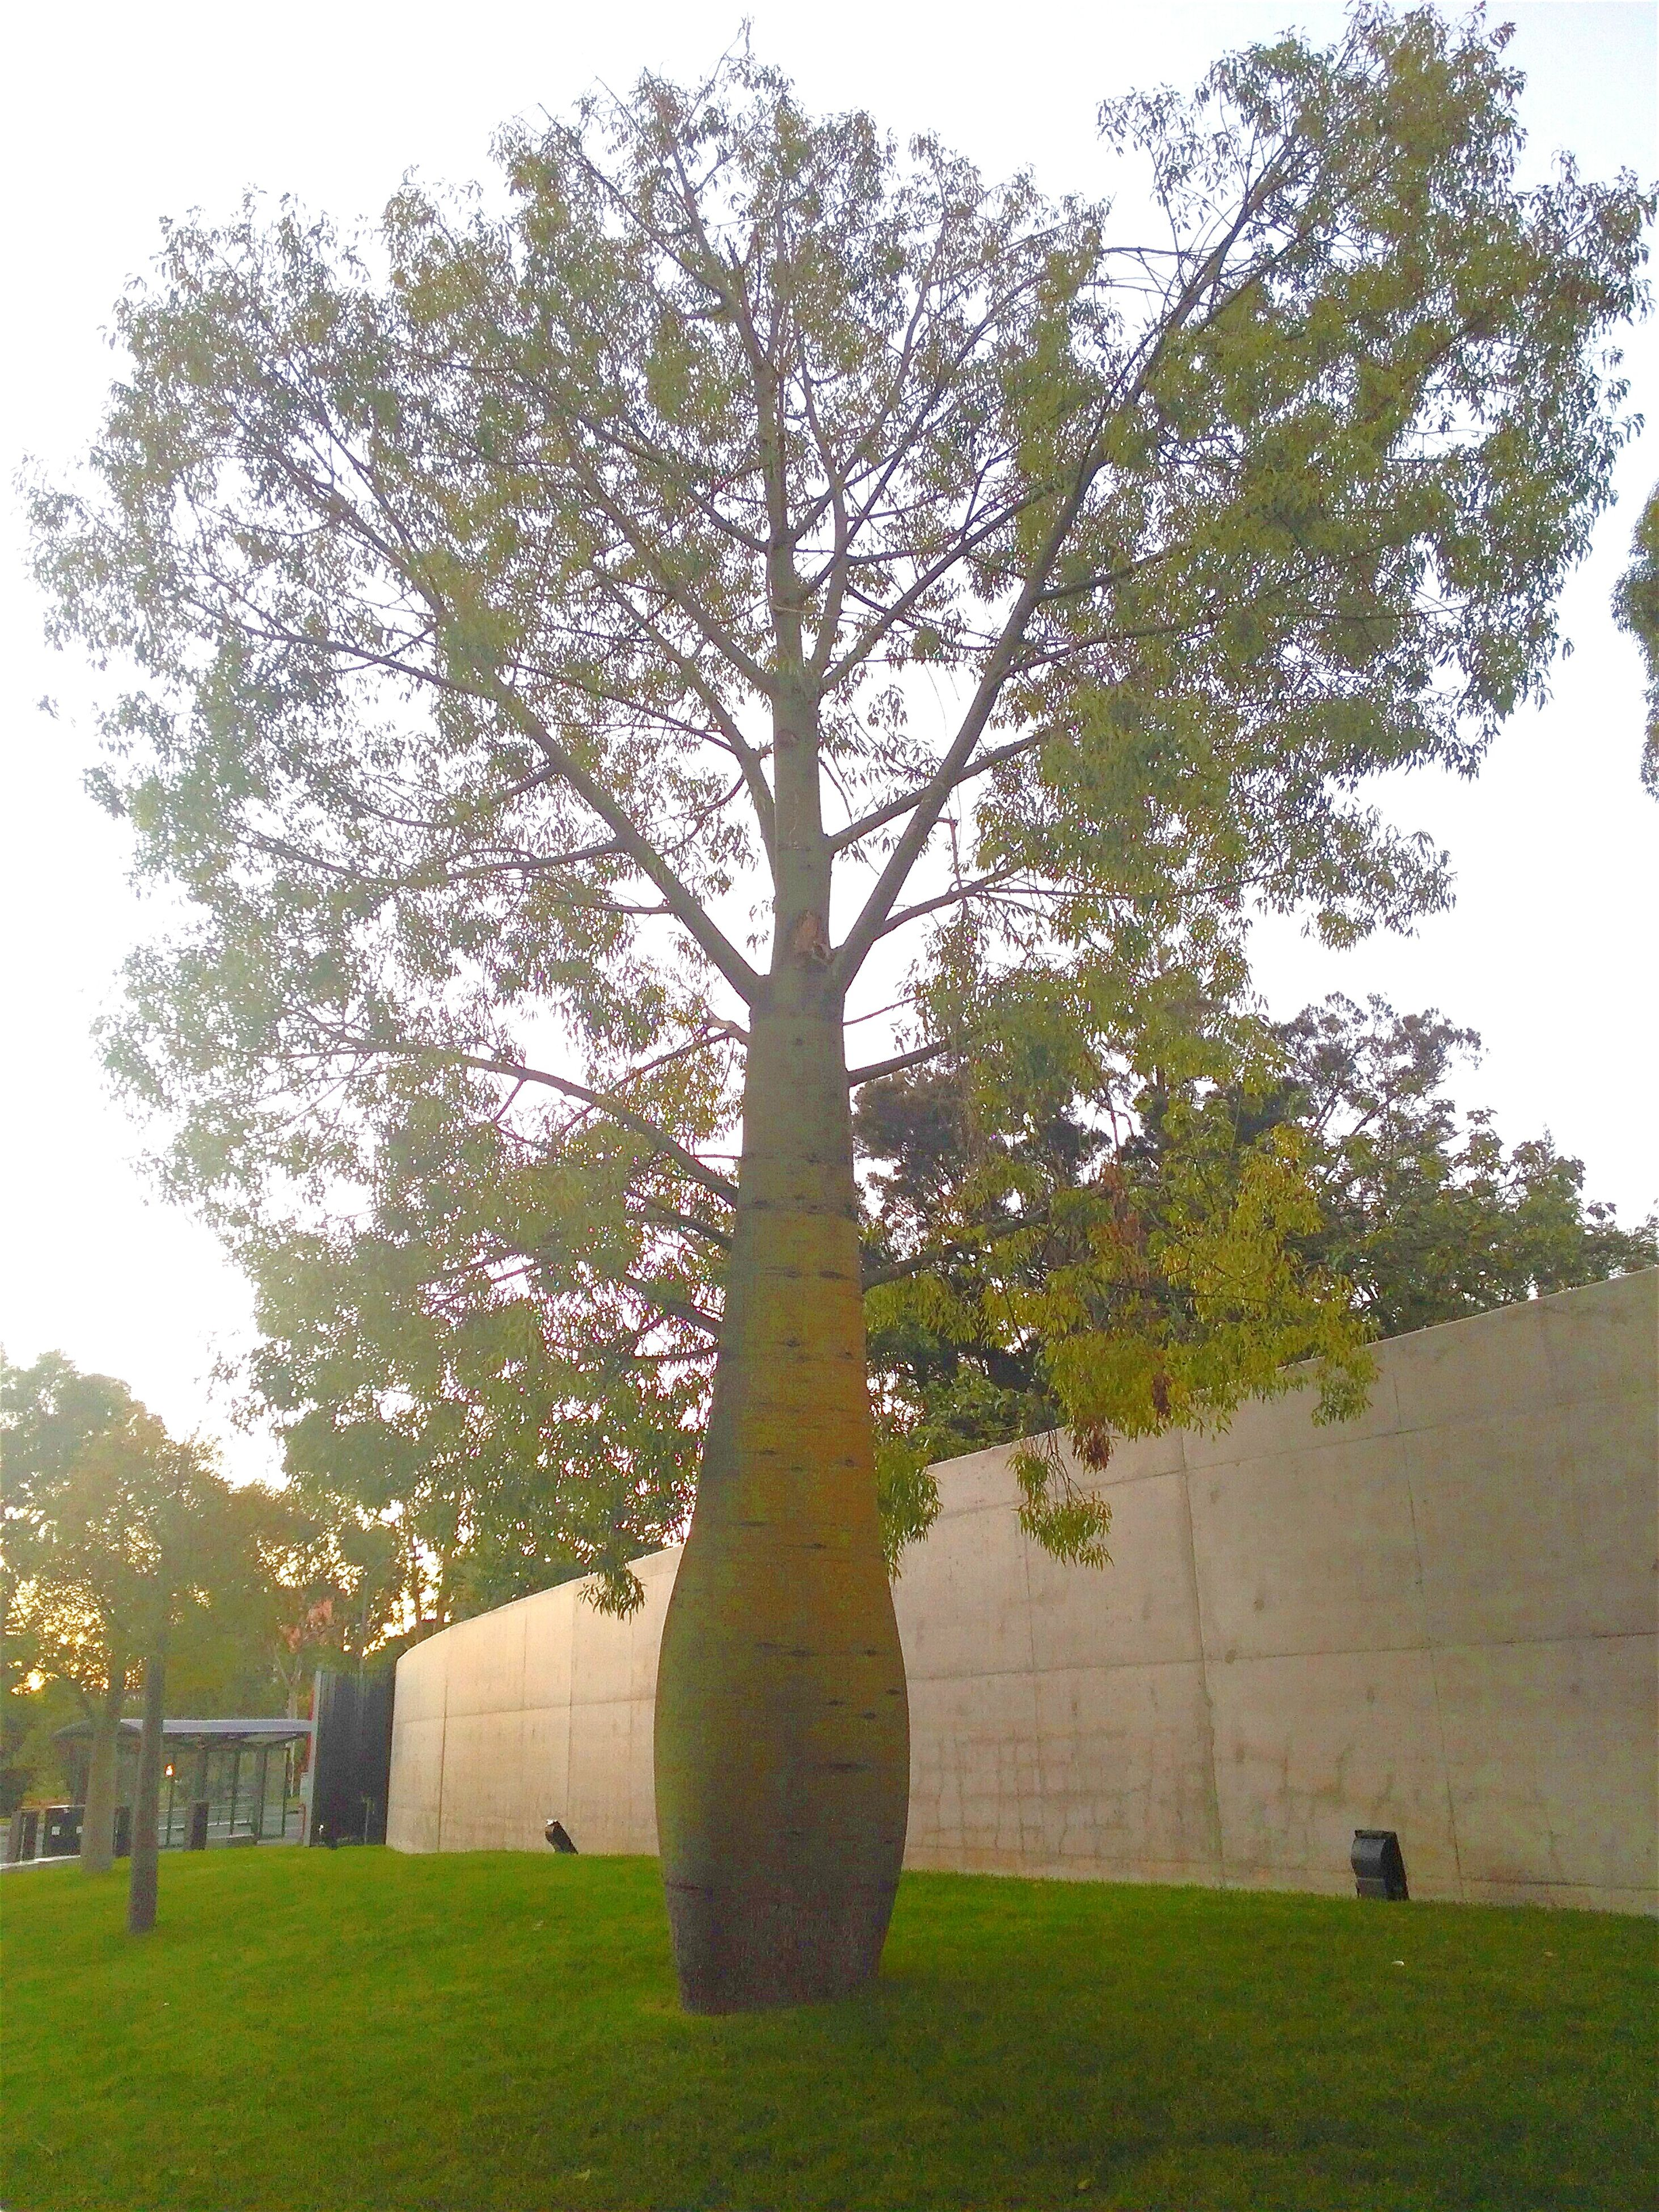 tree, grass, growth, green color, built structure, architecture, building exterior, field, branch, park - man made space, tranquility, sky, nature, clear sky, tree trunk, grassy, lawn, beauty in nature, tranquil scene, sunlight